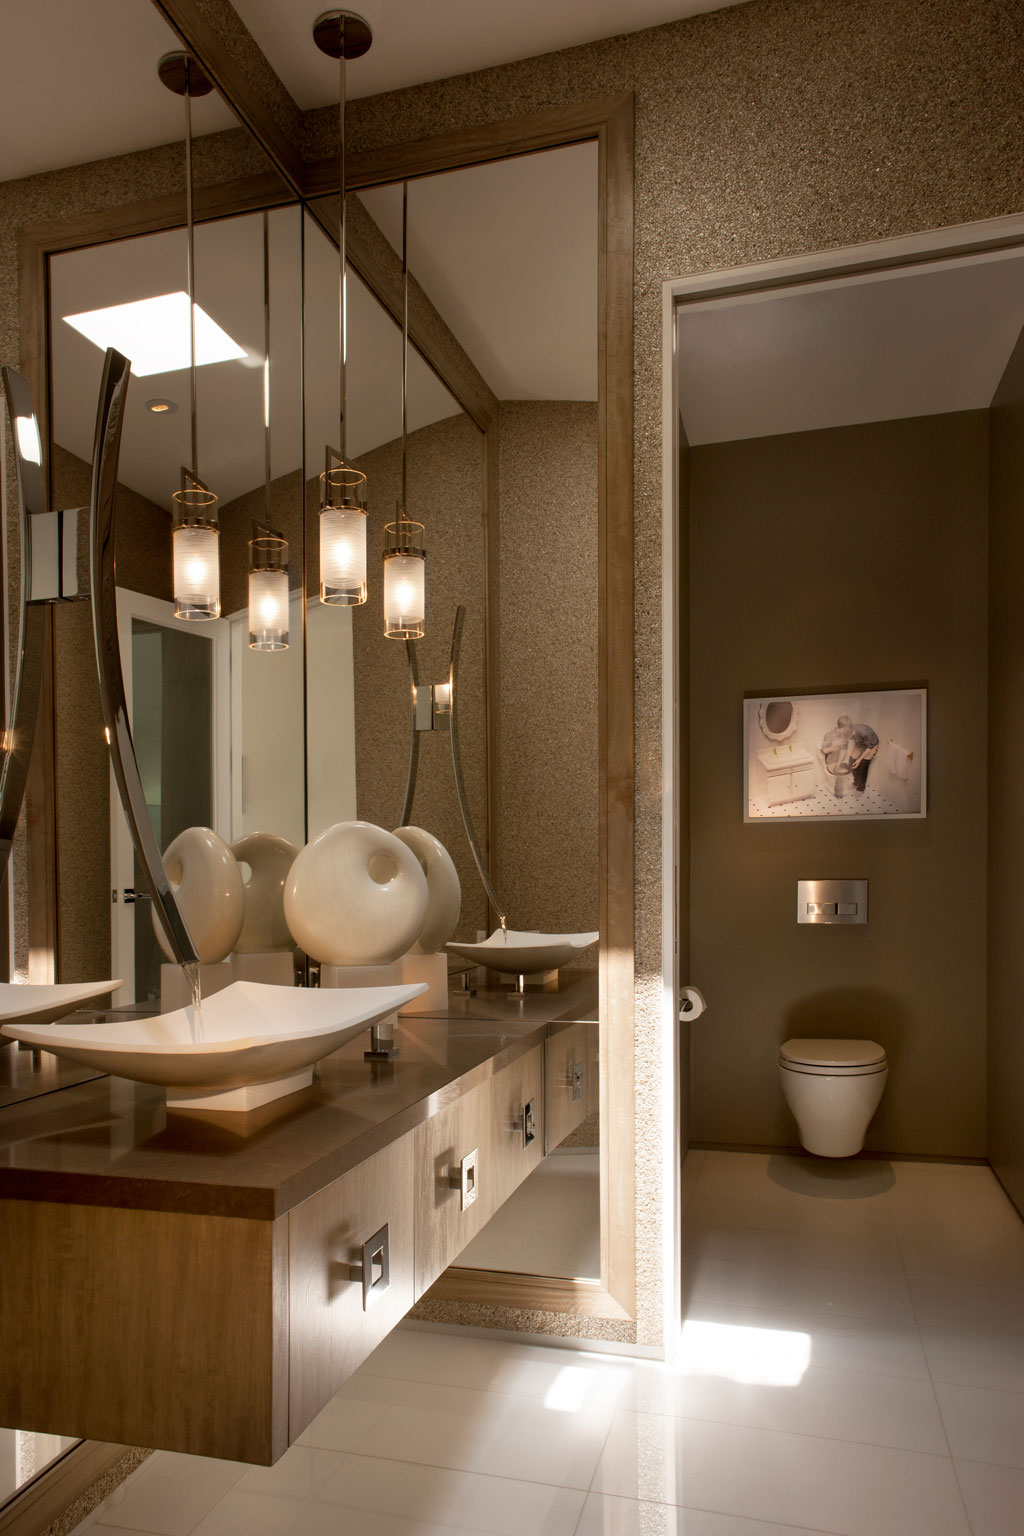 Bathroom+Designs+09 Michael+Mueller+Interior+Design+Los+Angeles